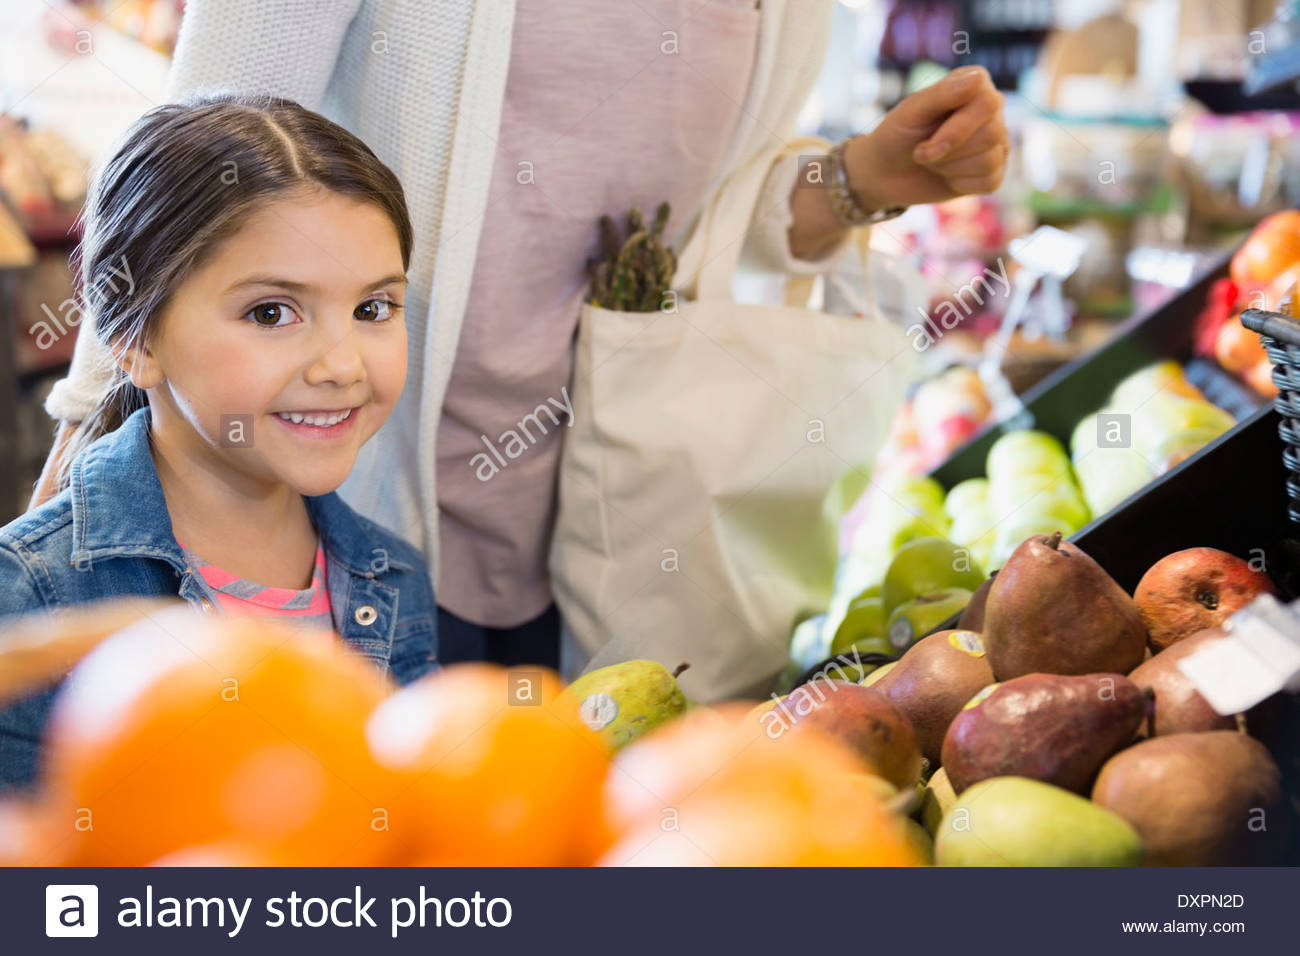 Portrait of girl shopping for produce in market - Stock Image